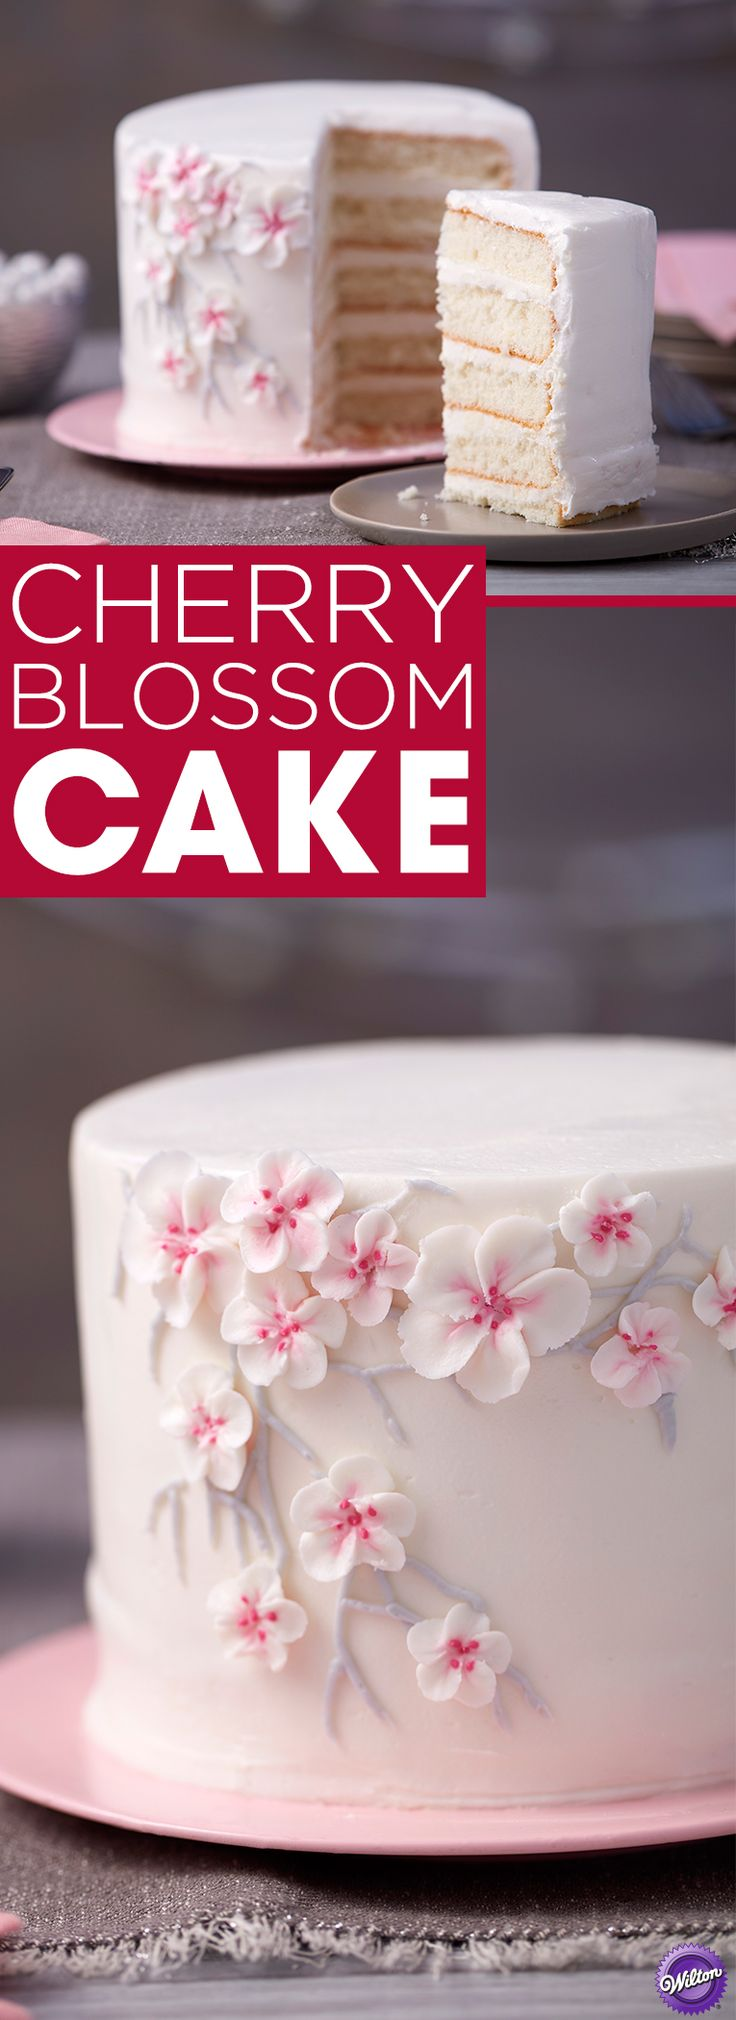 Simple and sweet, this Cherry Blossom Cake is the perfect finish to a bridal shower or large dinner party. An eye-catching floral branch makes this subtle cake stand out among the rest, and it's simple enough for beginning decorators as well as those who are more advanced. Use the Wilton Easy Layers Cake Pan Set to easily create all the layers for this cake at one time.